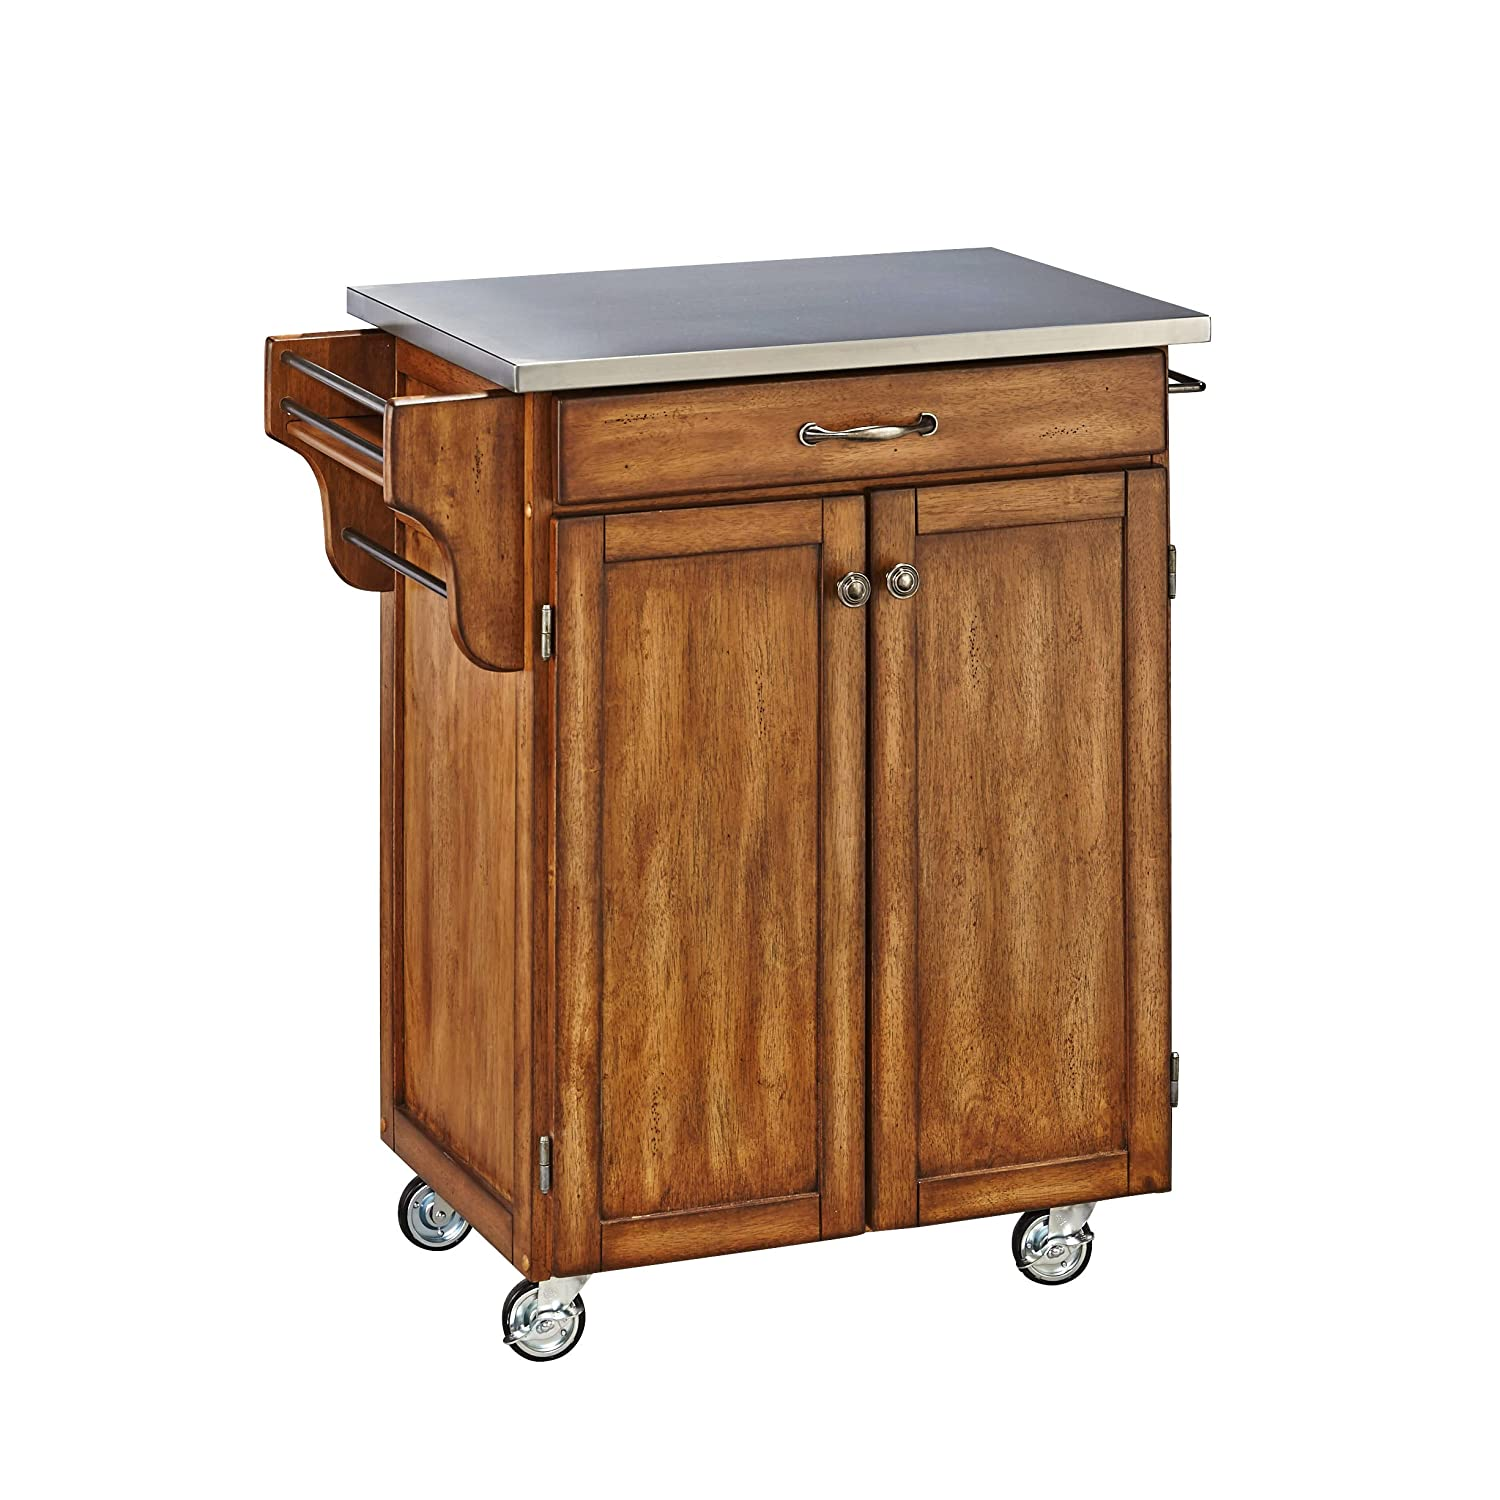 Create-a-cart Warm Oak Kitchen Cart with Stainless Steel Top by Home Styles